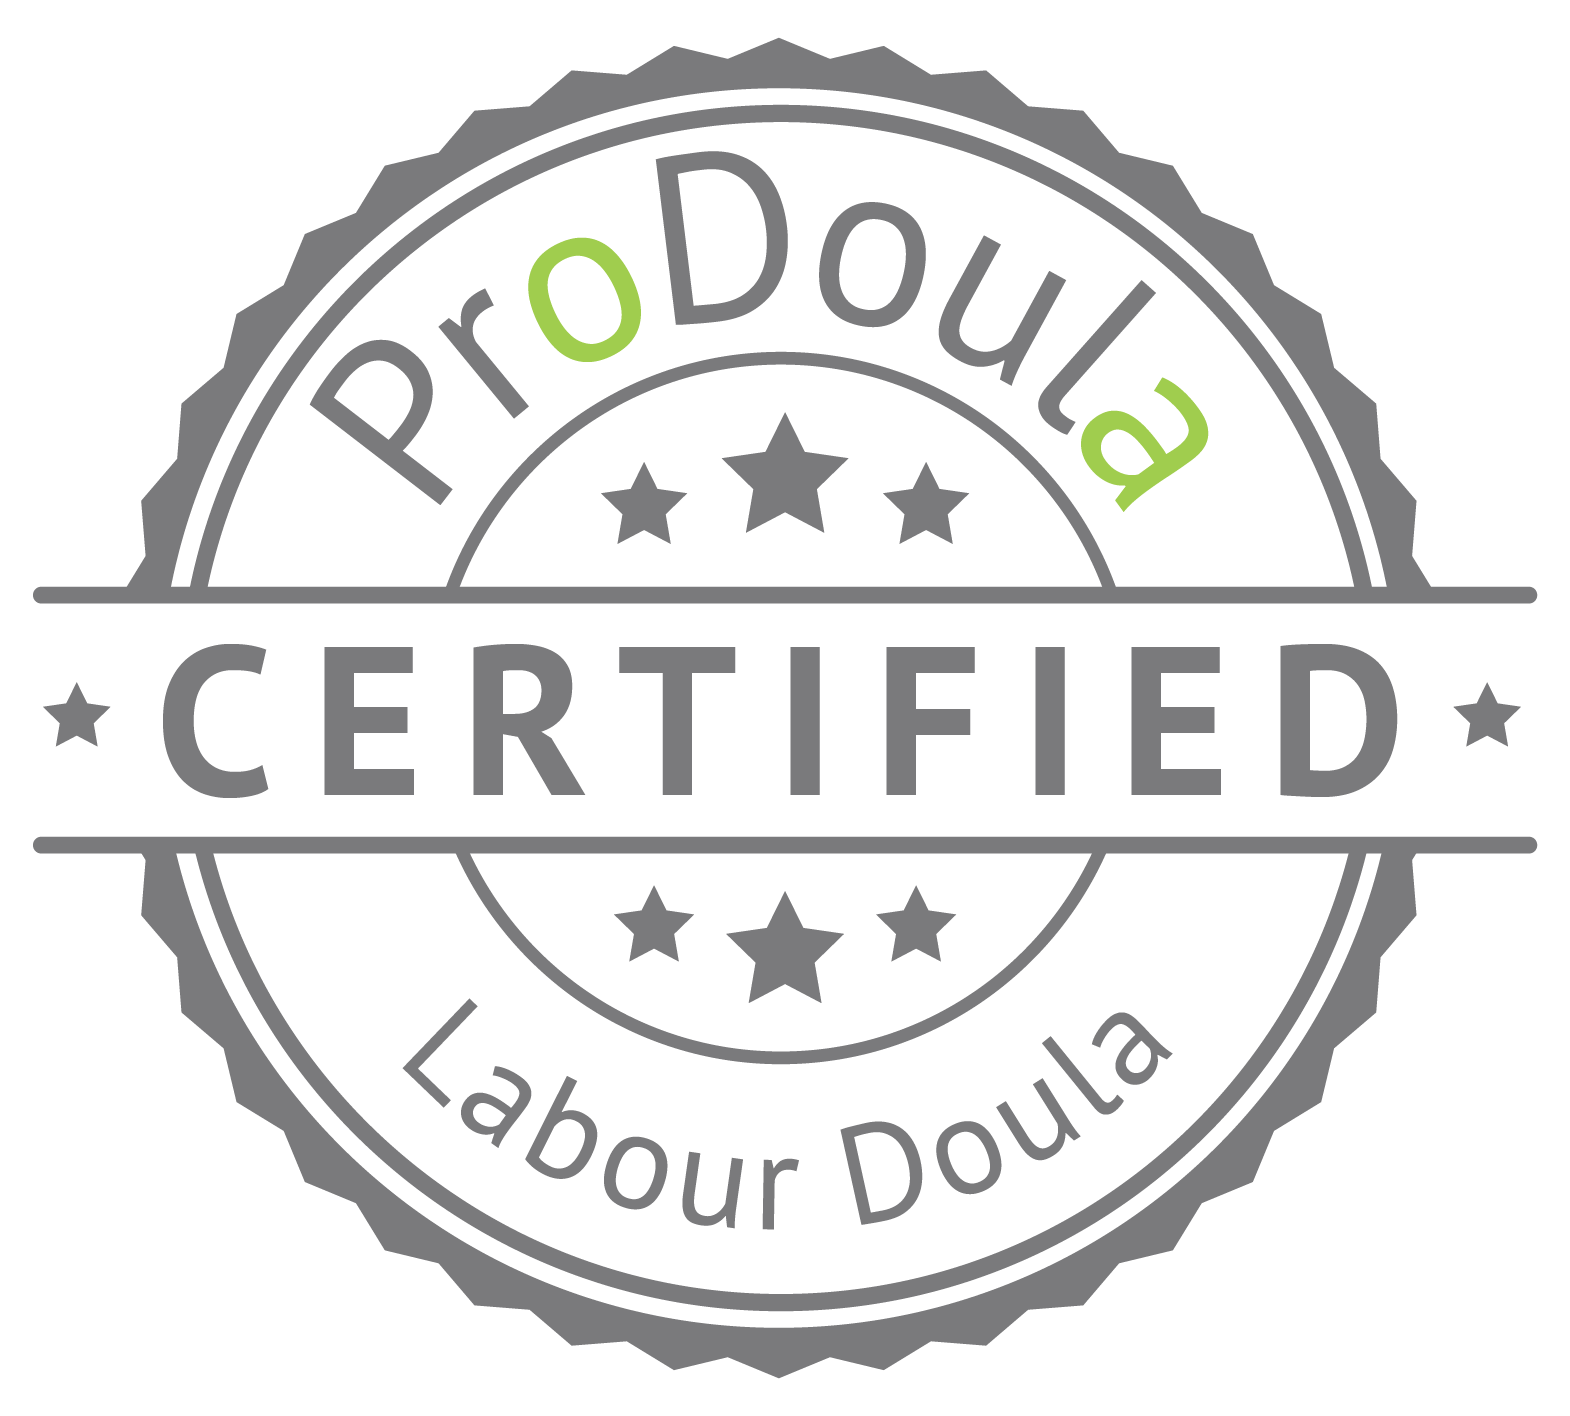 Labour-certified-badge.png